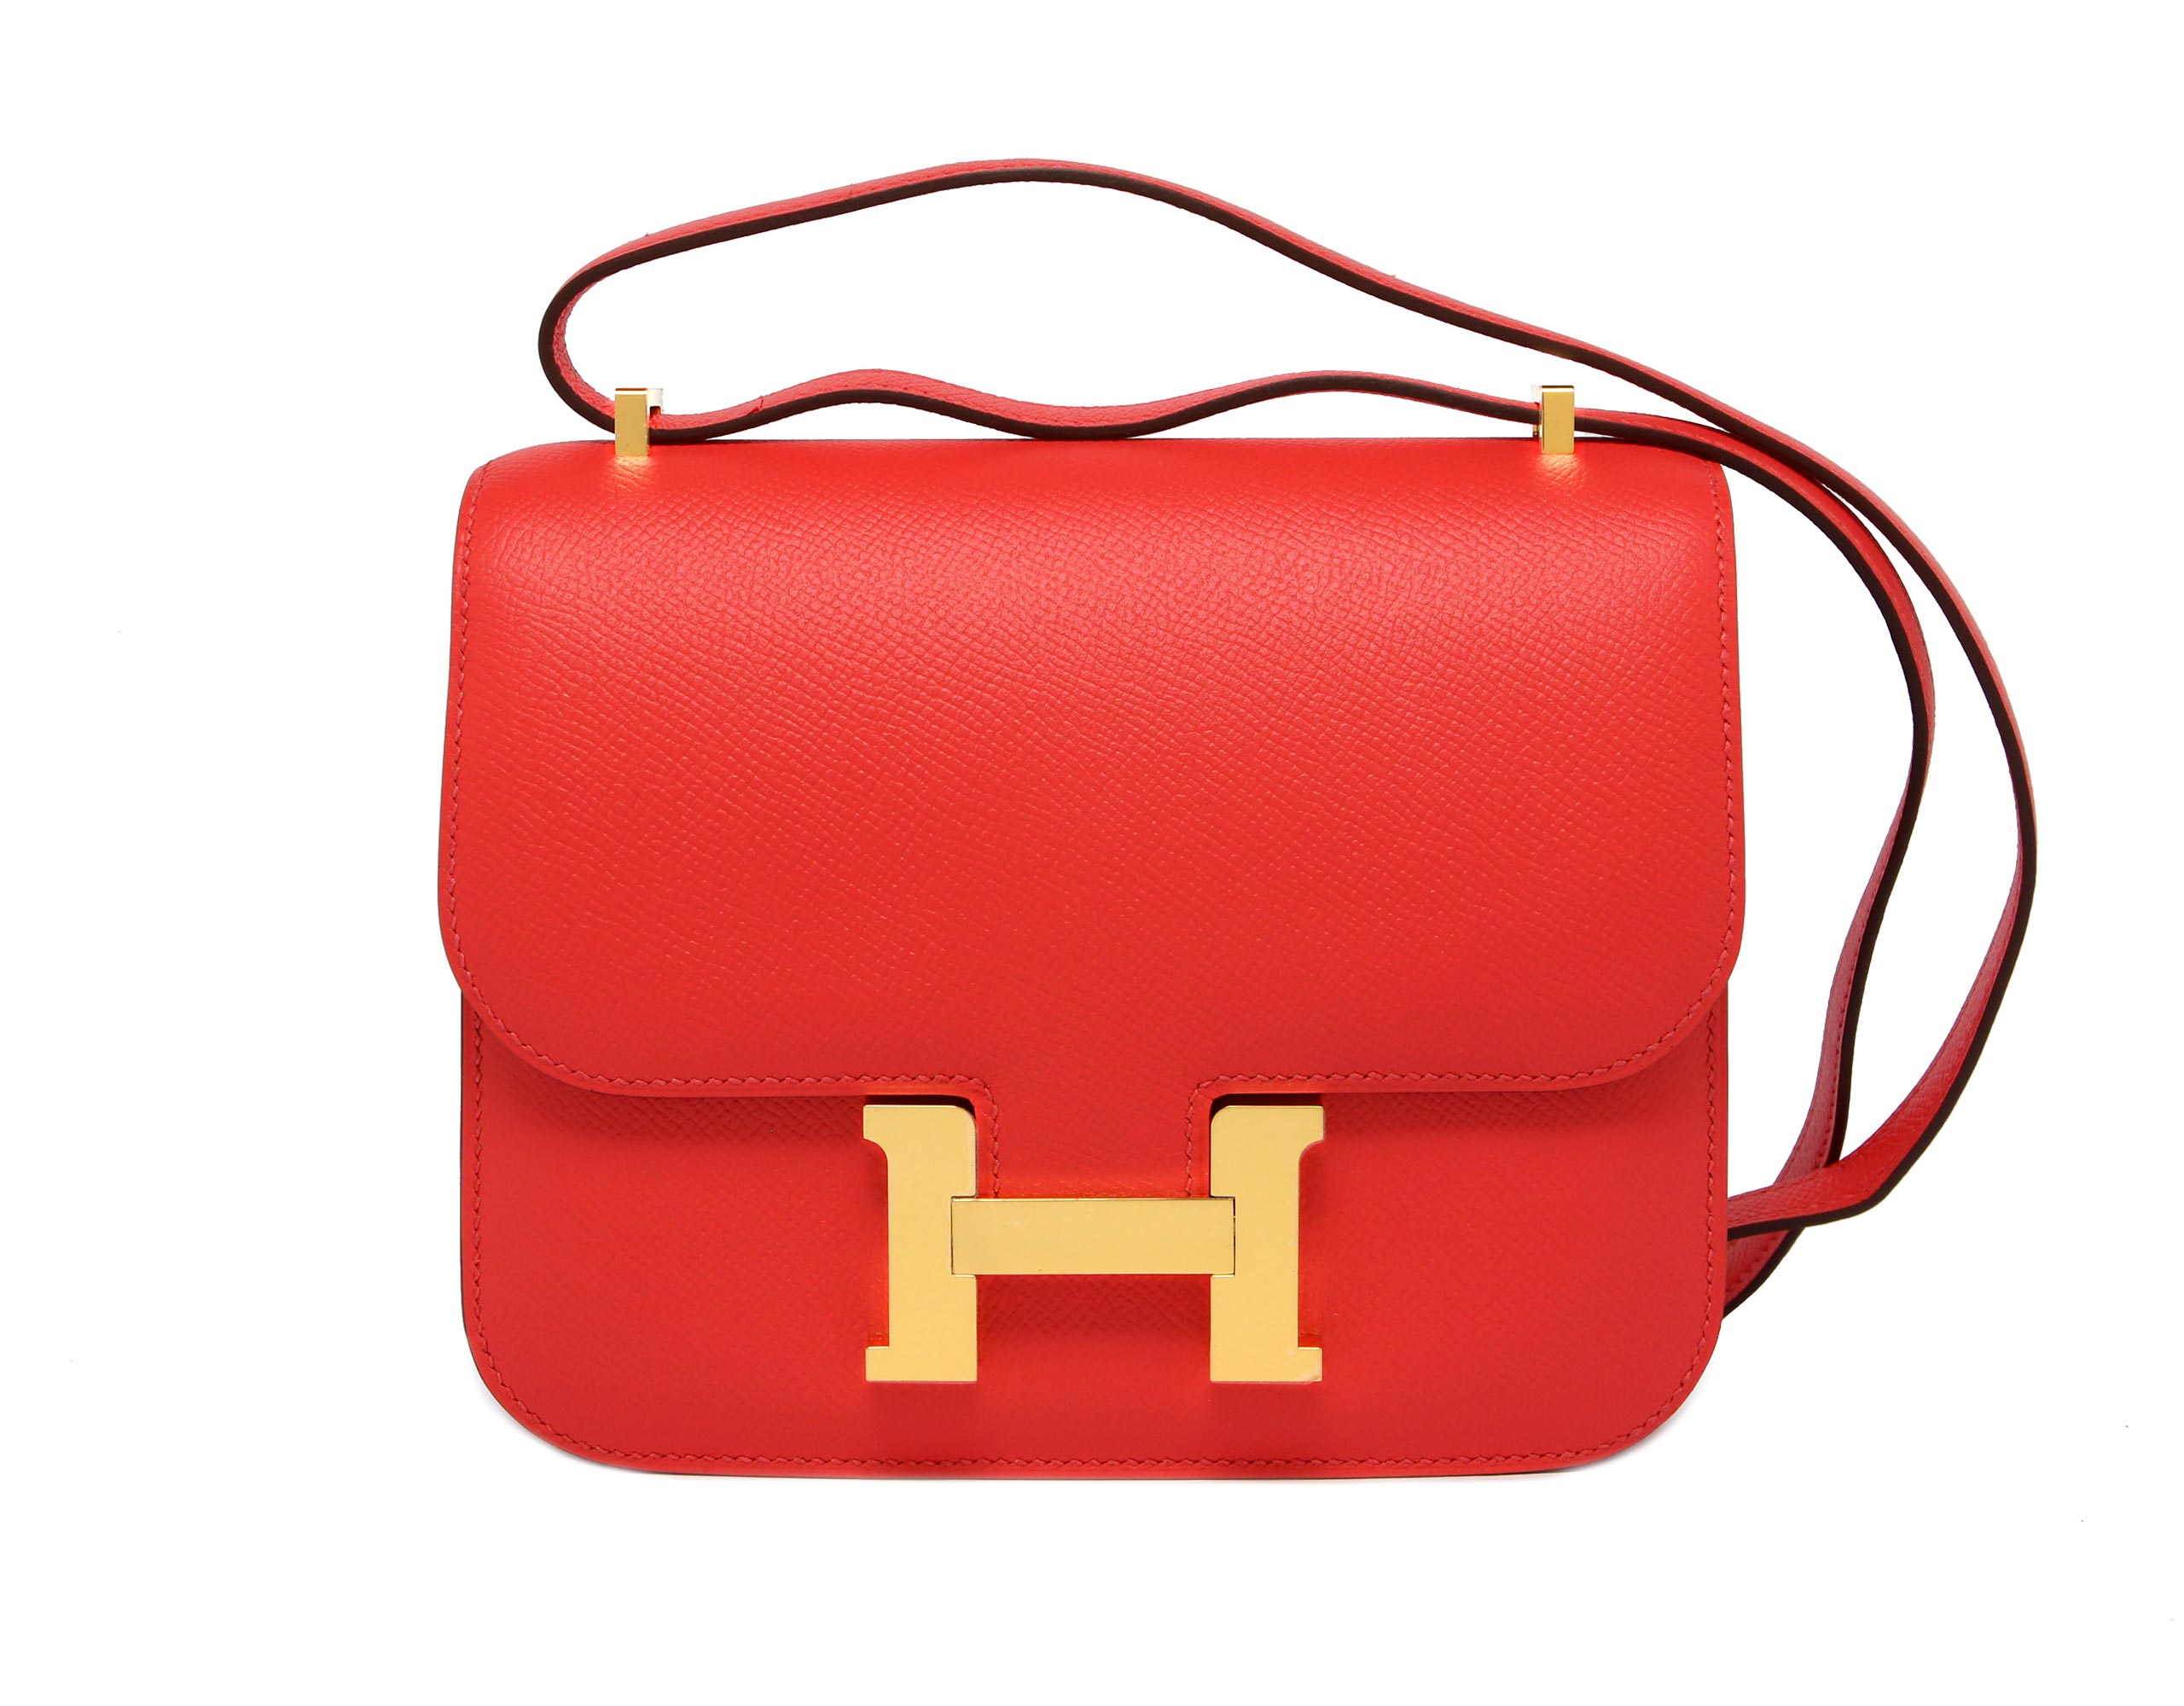 bbc64605cddc Hermes Constance Bags For Sale